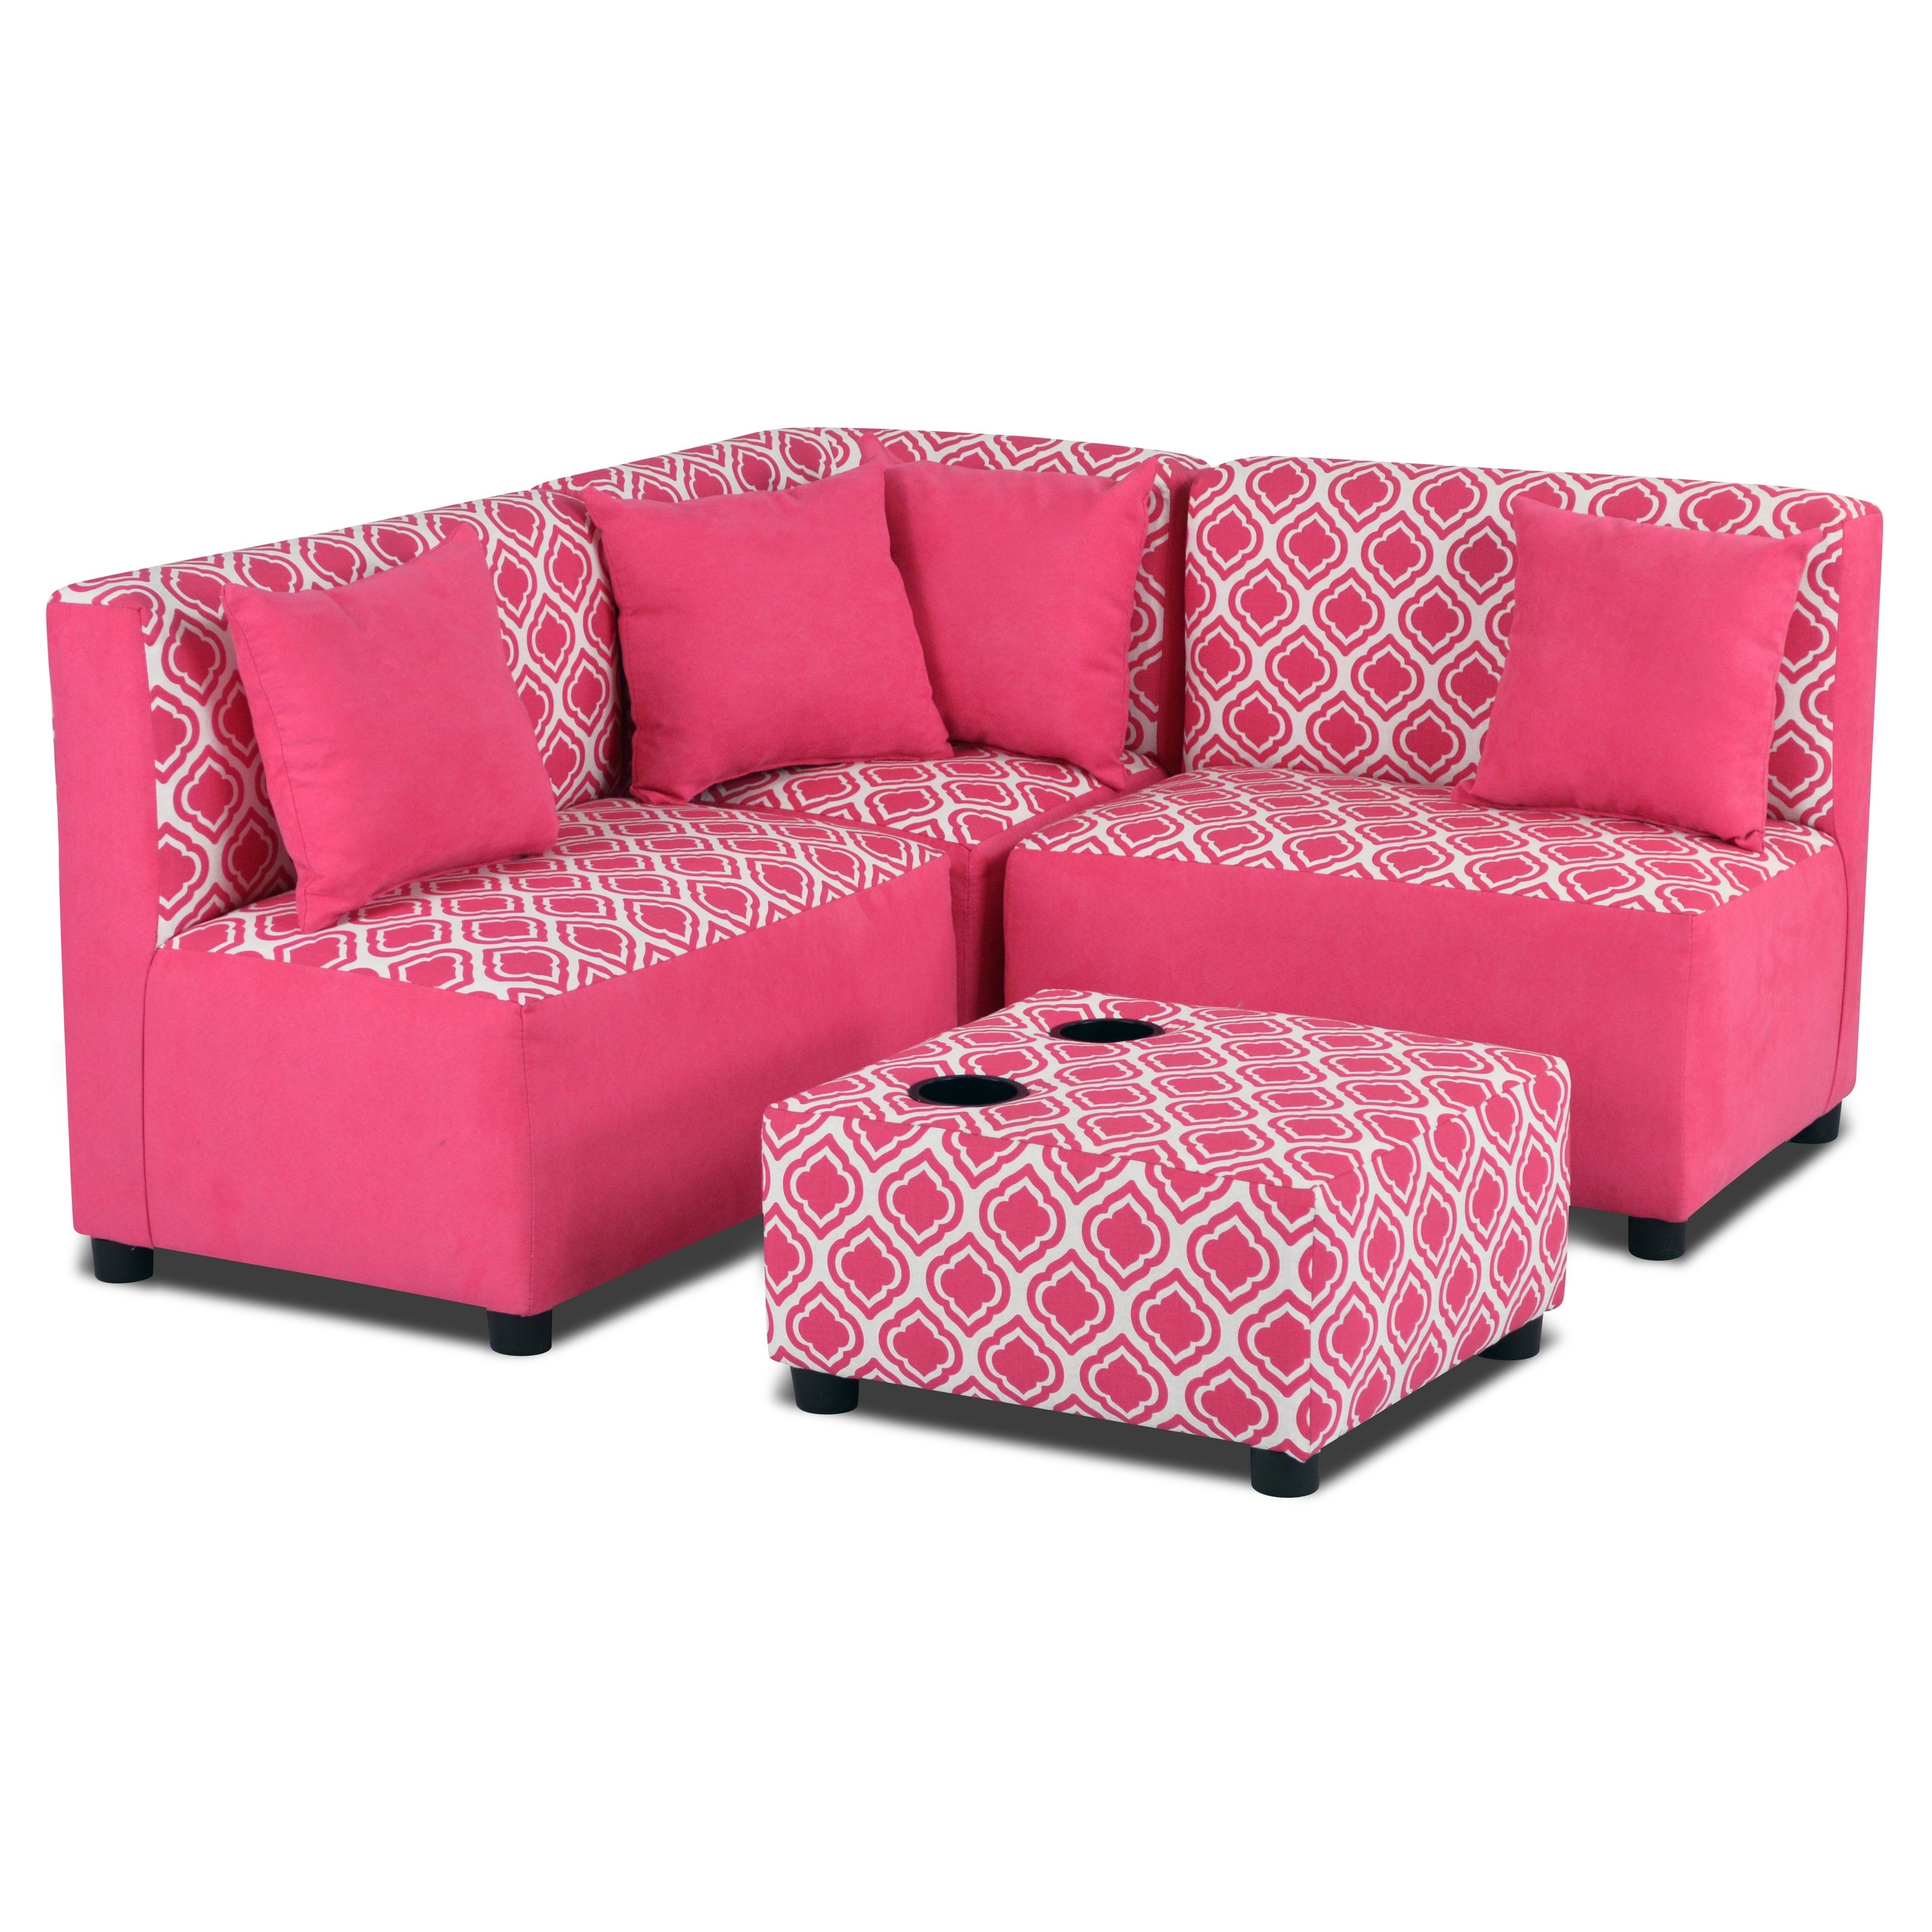 Childrens Sofas – Home And Textiles In Childrens Sofas (Image 3 of 10)